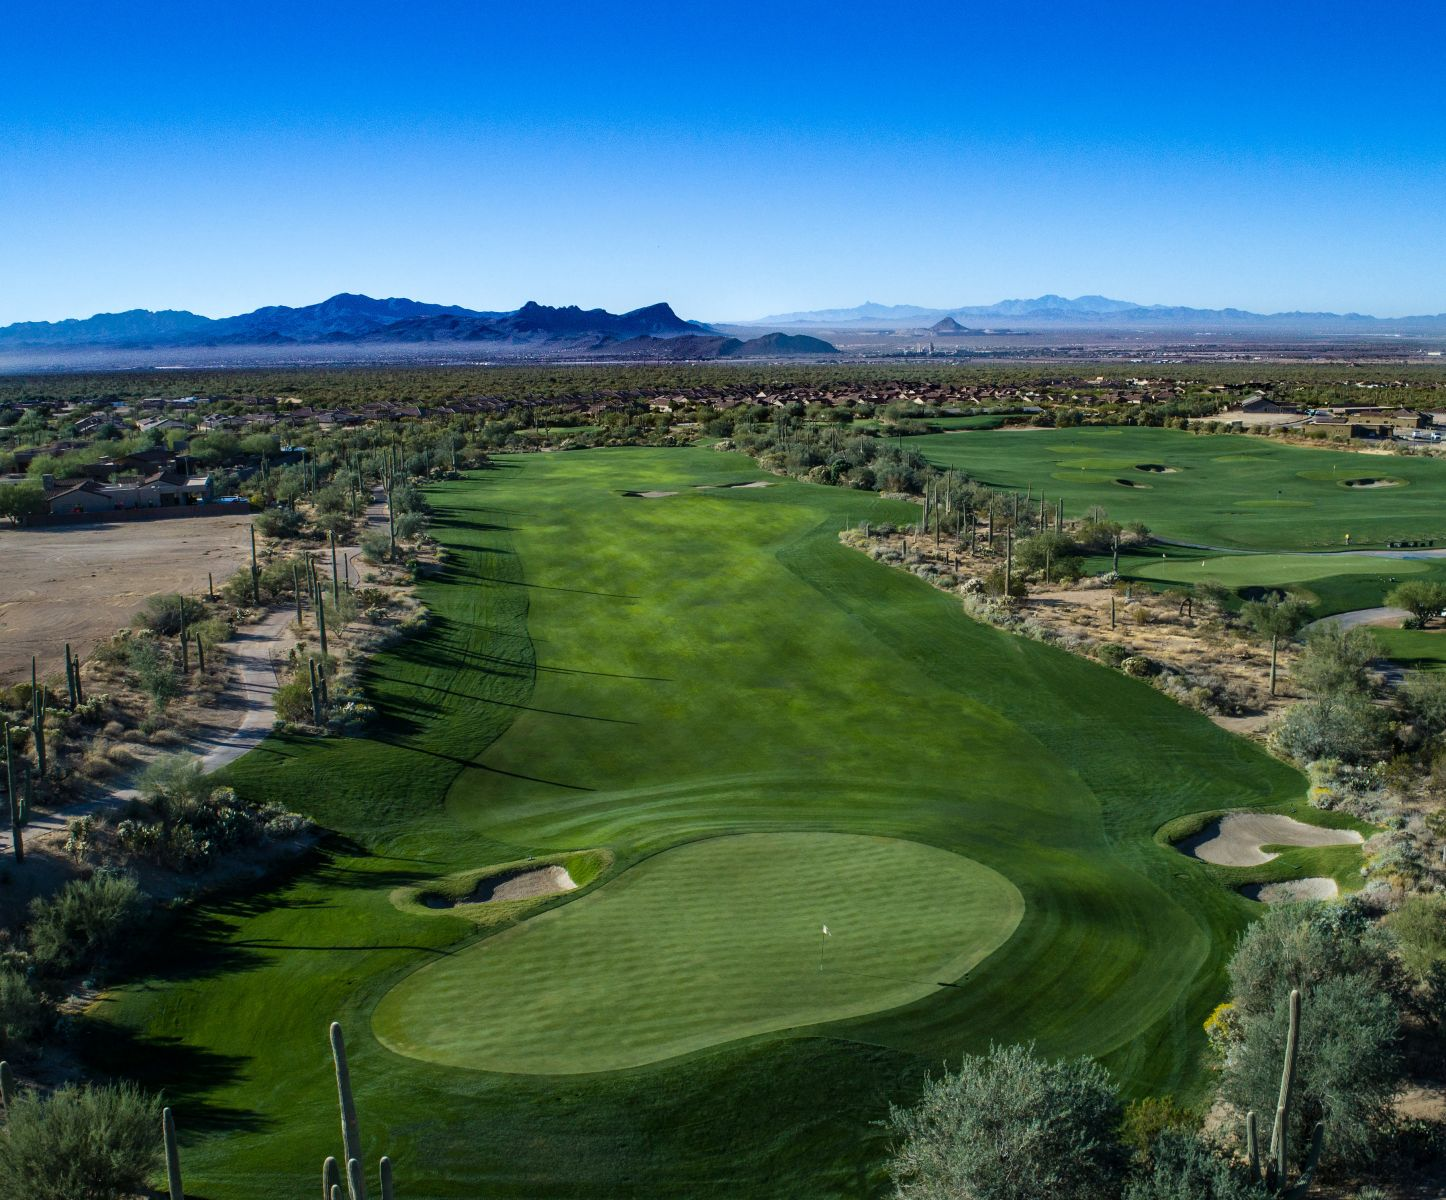 Aerial view of hole 9 on the Wild Burro course